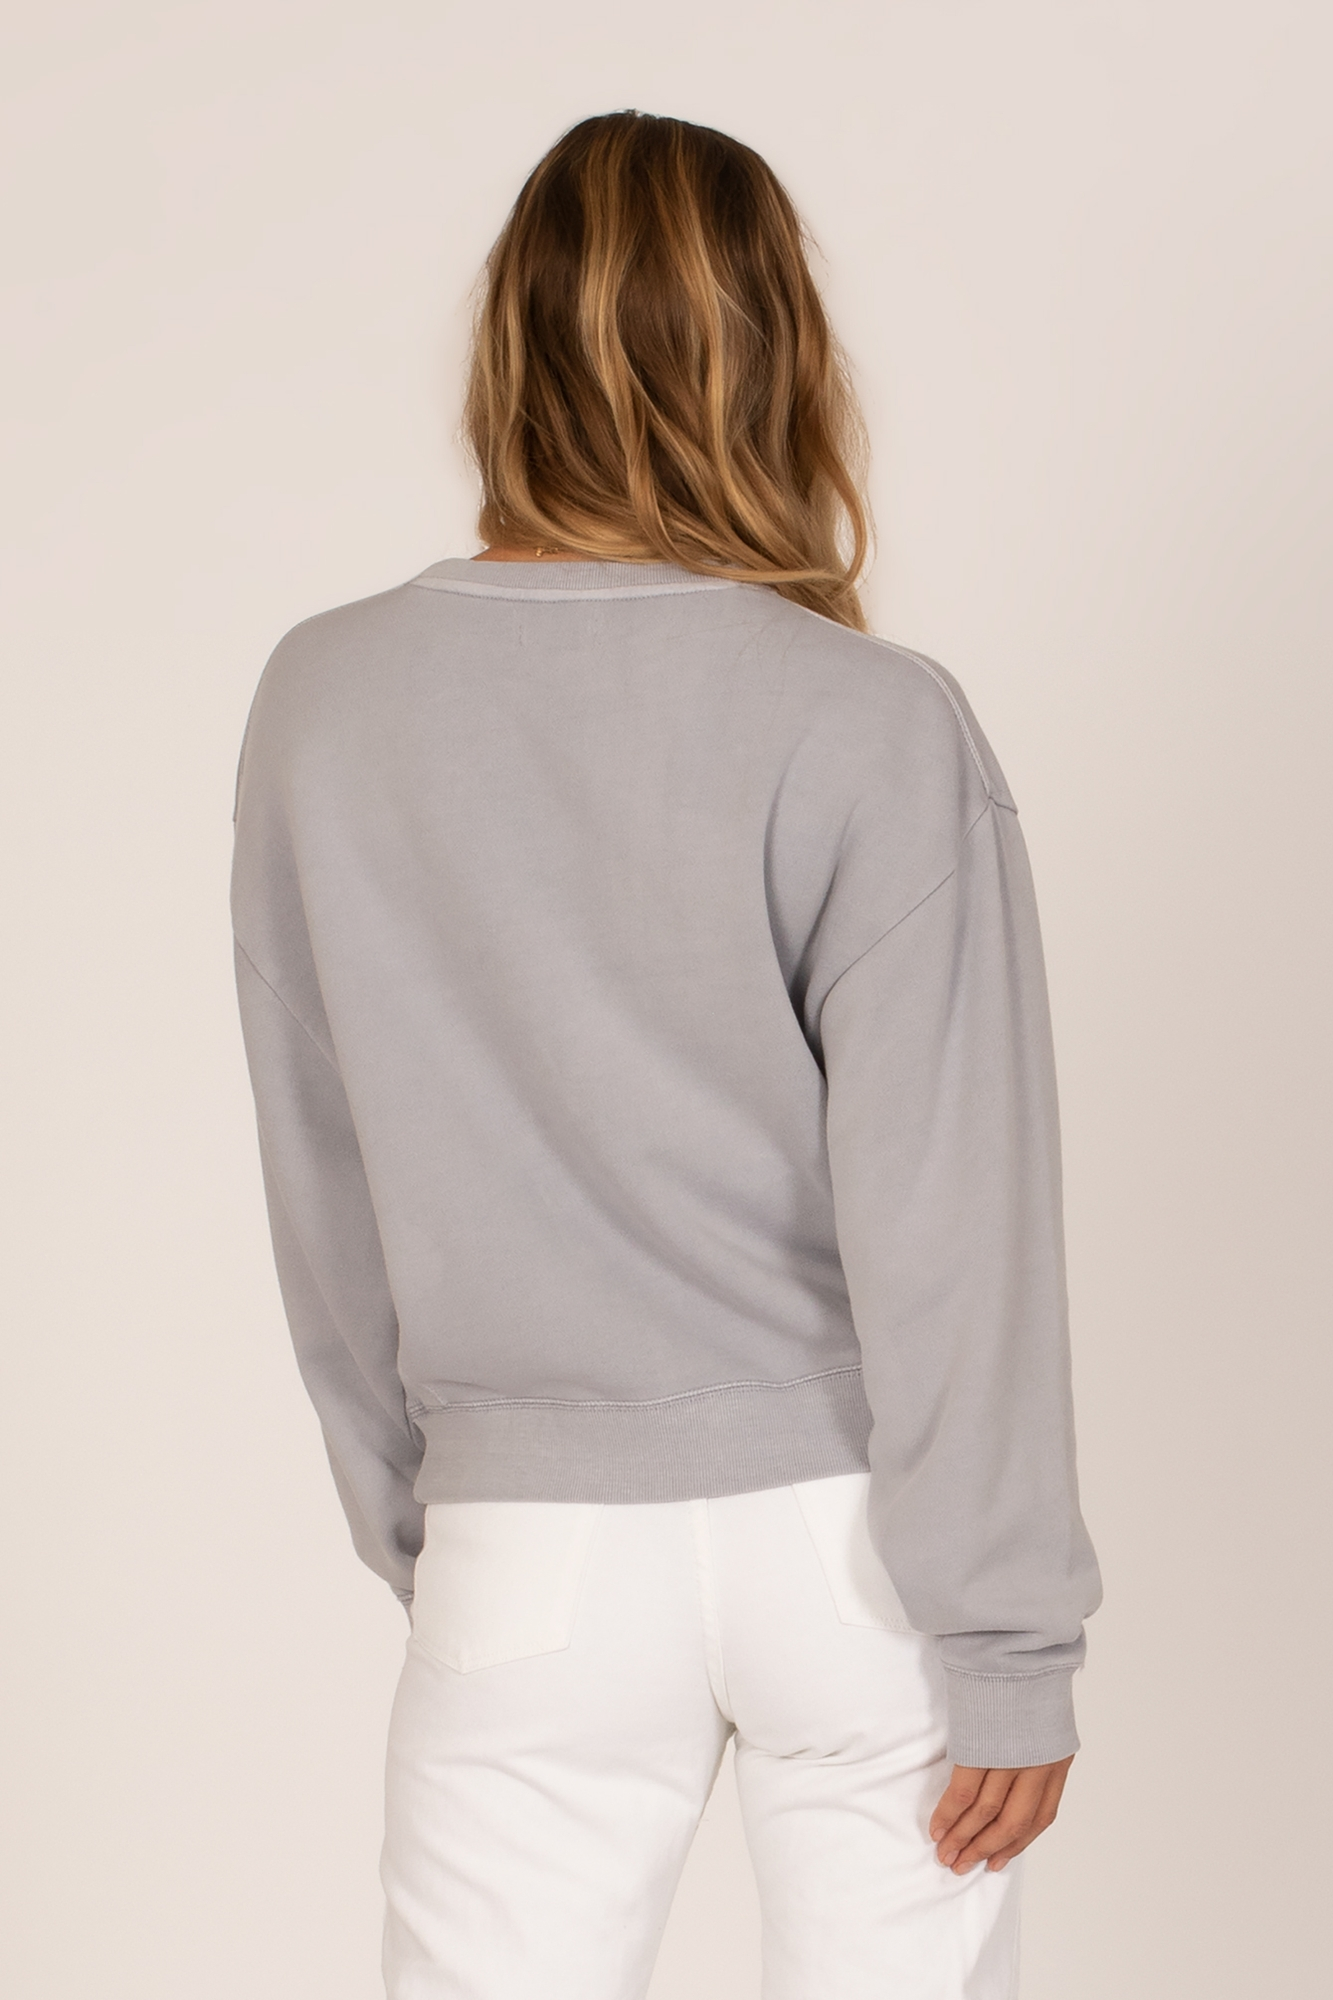 Misty Morning Fleece Pullover